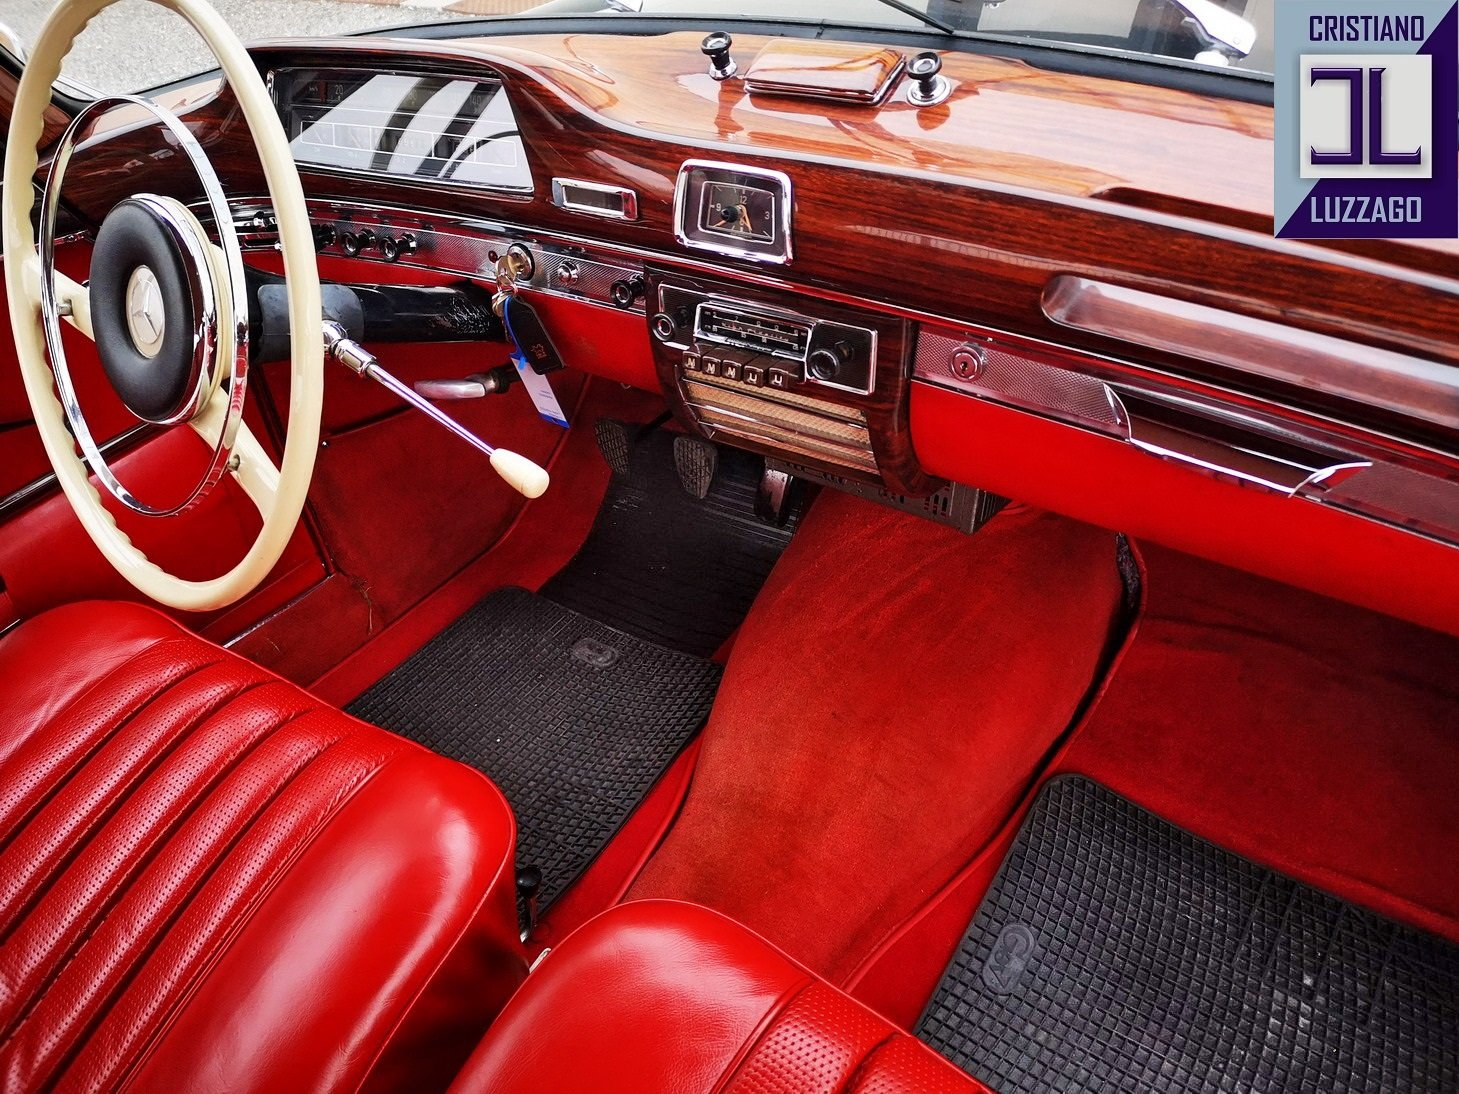 1959 MERCEDES BENZ 220 SE COUPE W128 PONTON,85,539 GENUINE M For Sale (picture 3 of 6)